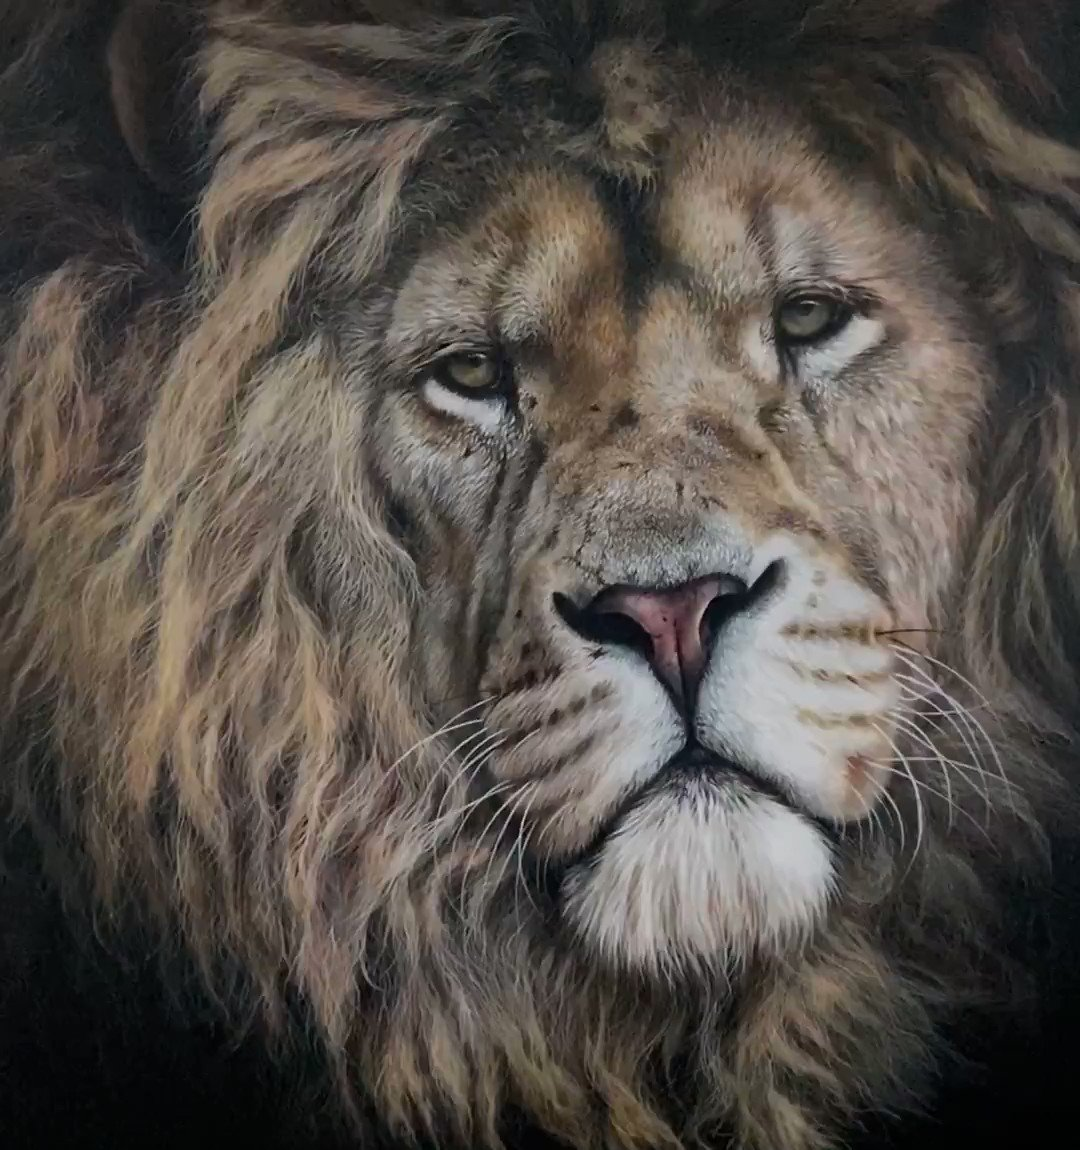 A close-up look at my big lion painting....(1m x 1m Acrylic on canvas) hope you like him! 🦁 🐾 🐾   #lionart #malelion #lovelions #art #artists #twitterartist #painting #ArtistaSocial #artworld #canvas #realism #hyperrealart